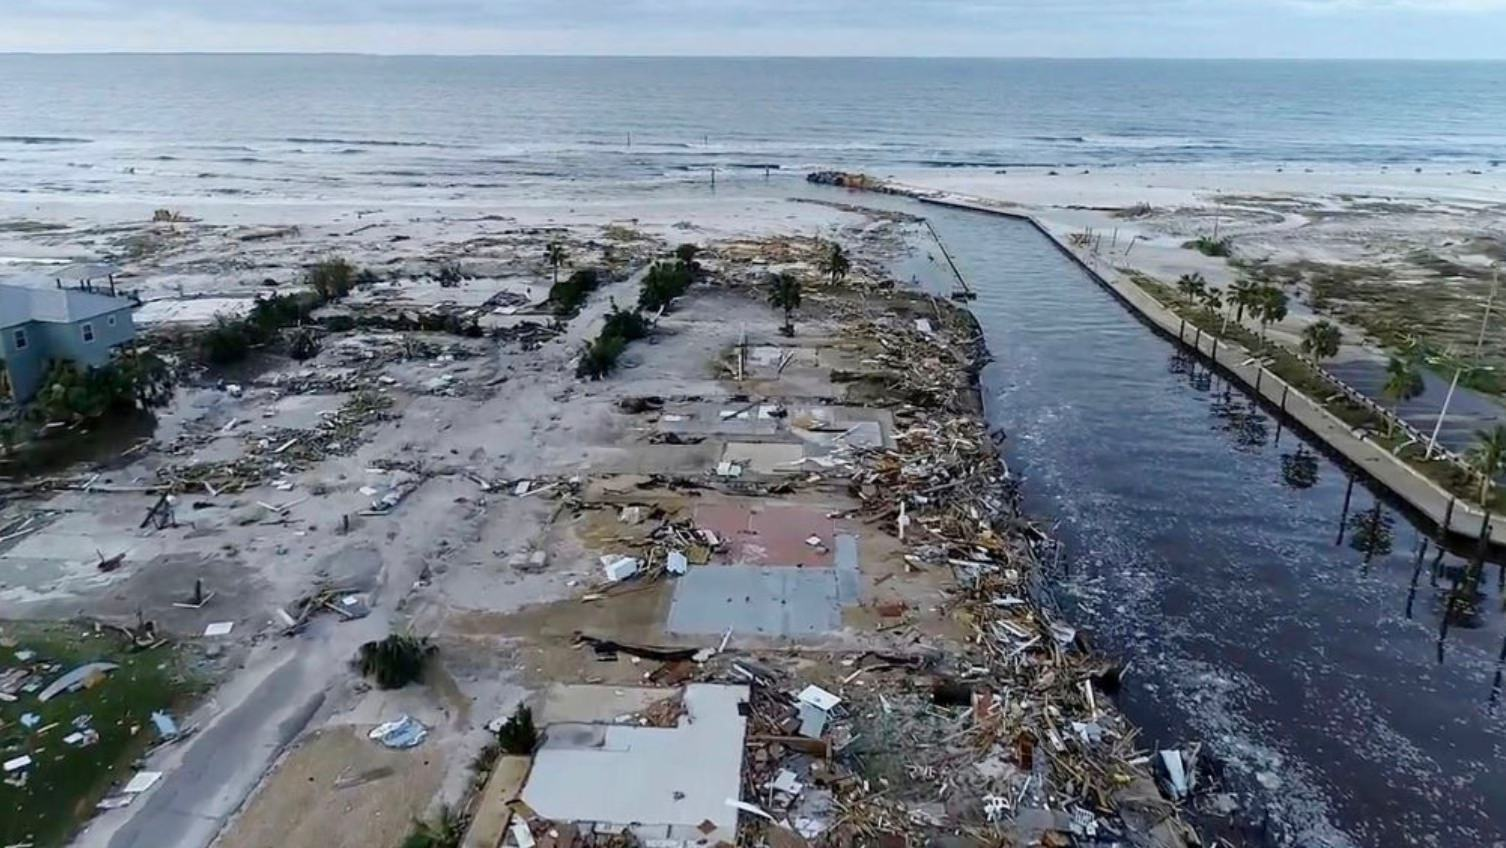 photo image After backlash, Verizon giving 3 months free service to Florida counties hit hardest by Hurricane Michael